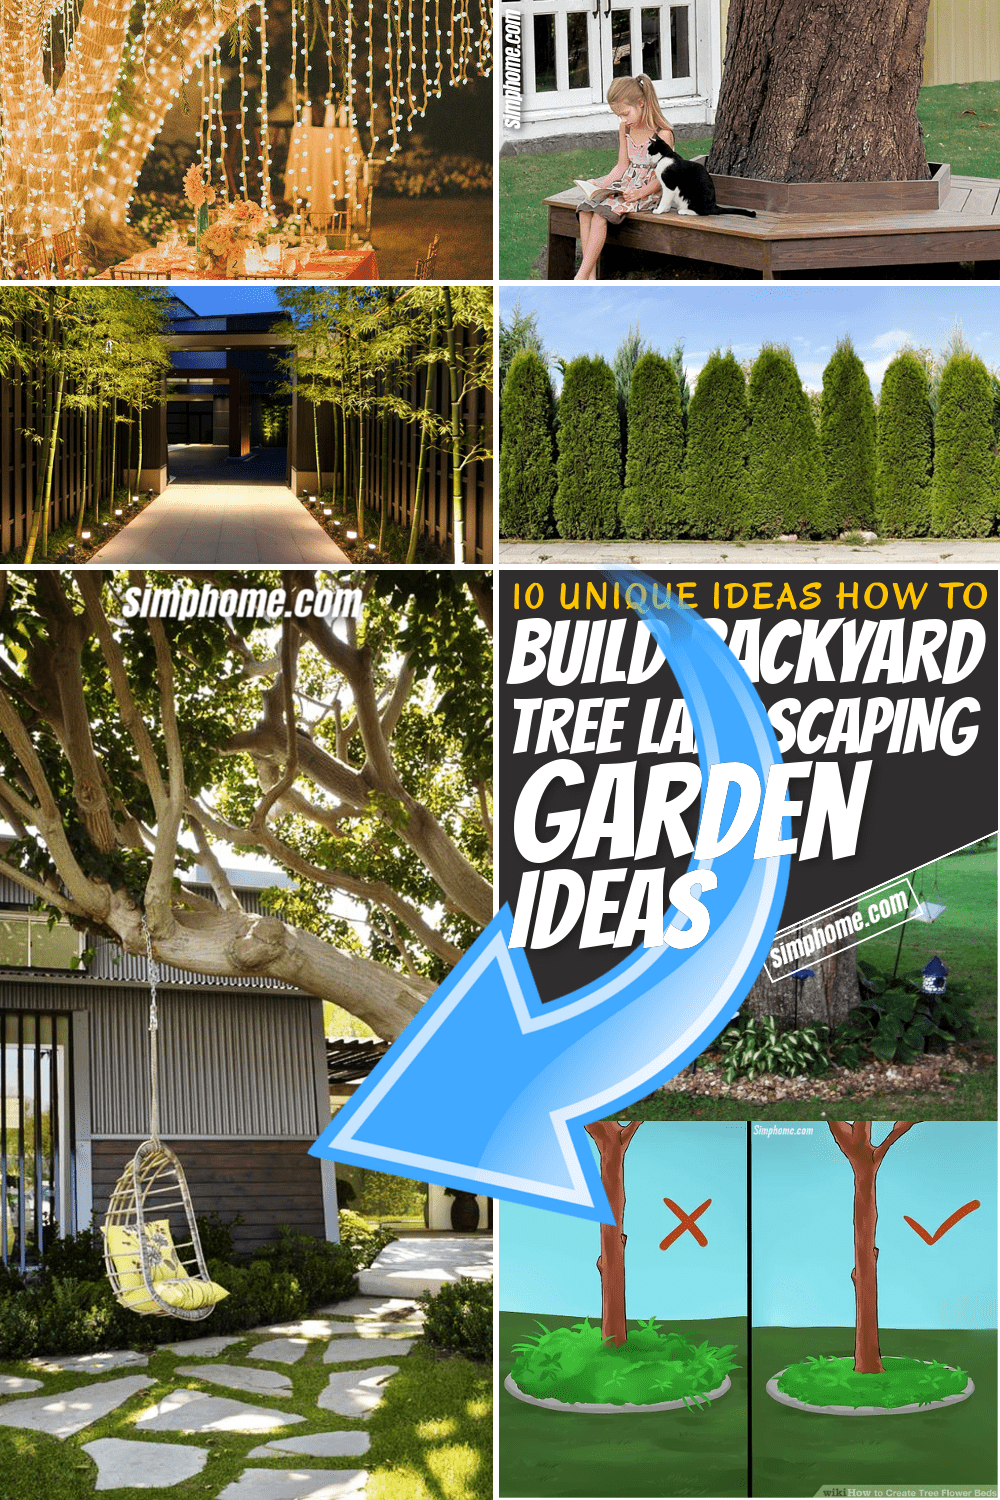 SIMPHOME.COM 10 Unique Ideas of How to Build Backyard Tree Landscaping Pinterest Featured image